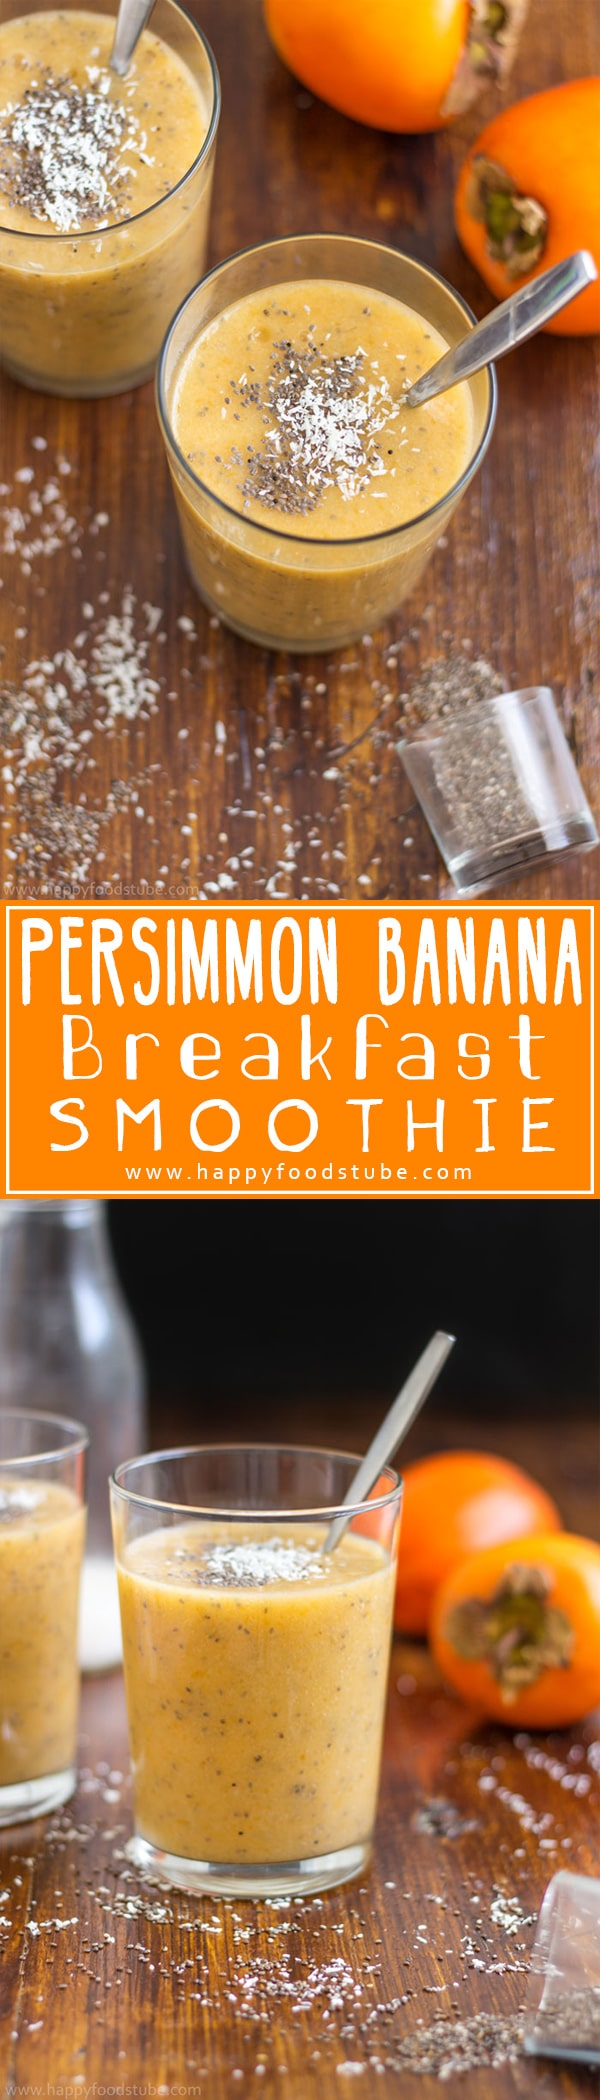 Start your day off with this dairy free persimmon banana breakfast smoothie! It will boost your energy and help you stay healthy! | happyfoodstube.com